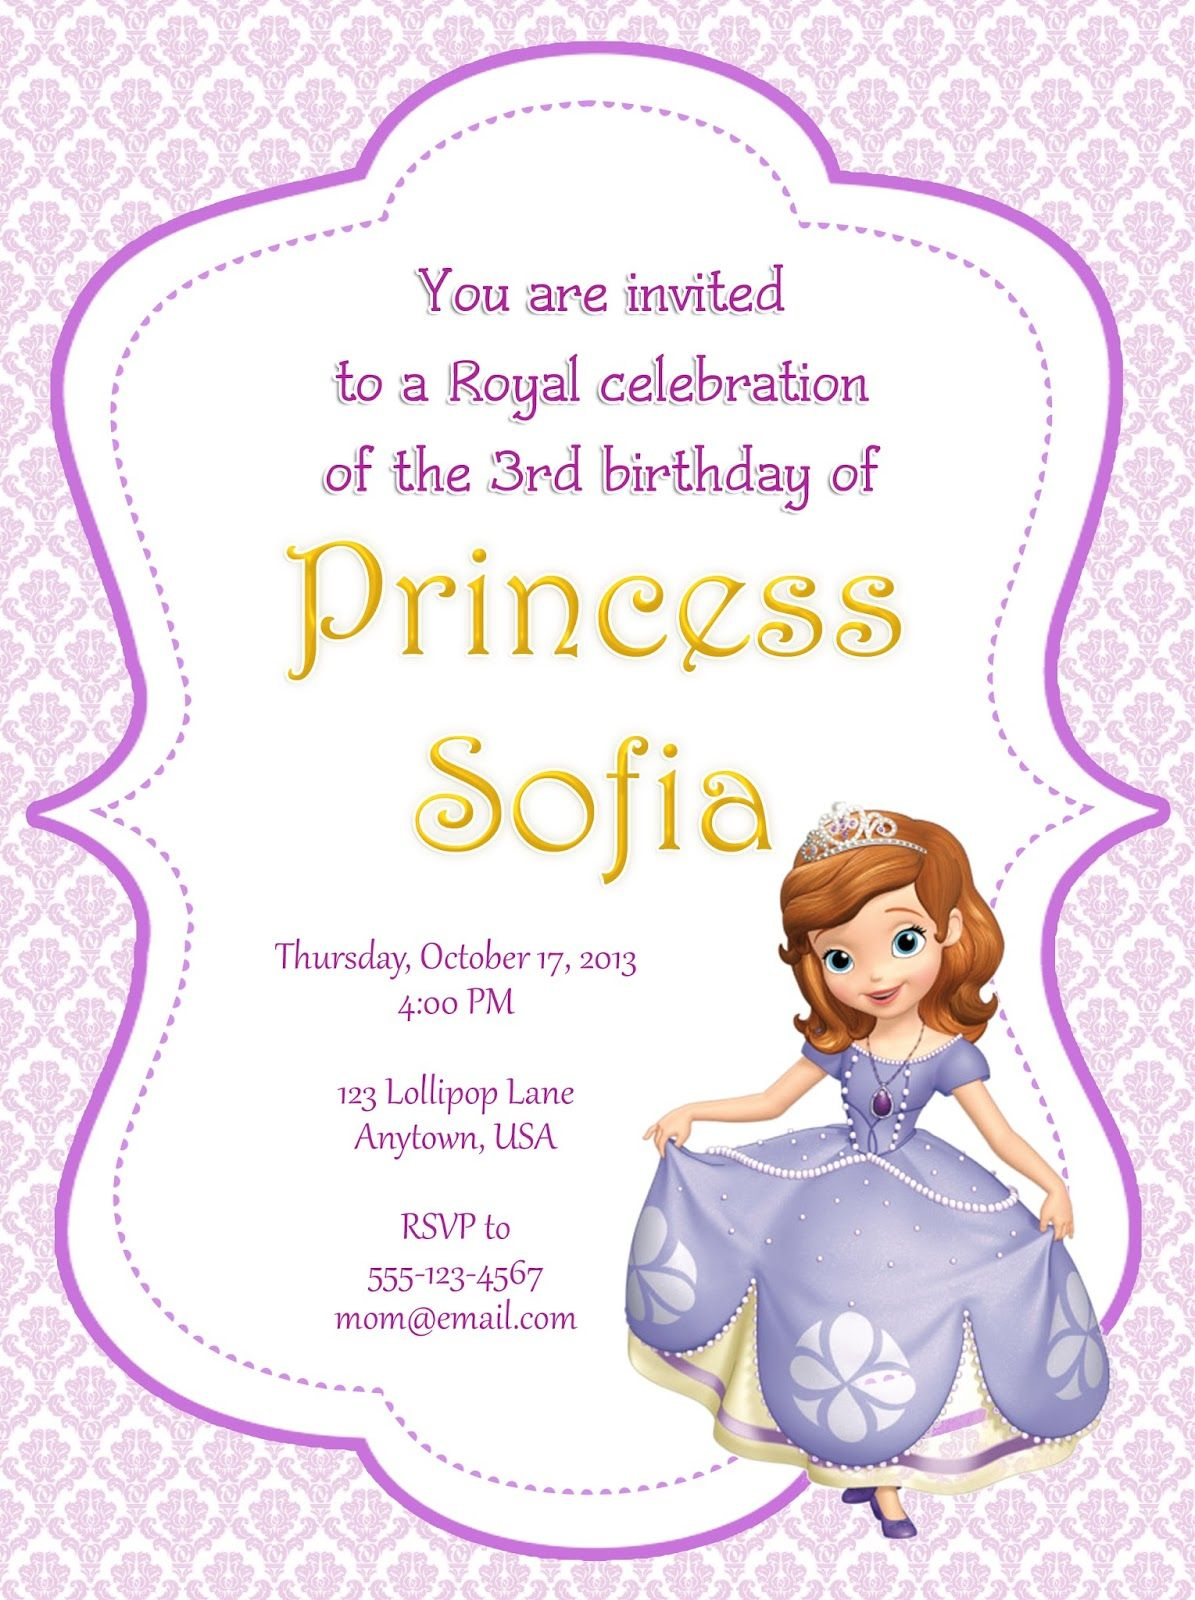 Sofia the first party invitations to inspire you how to make the ...